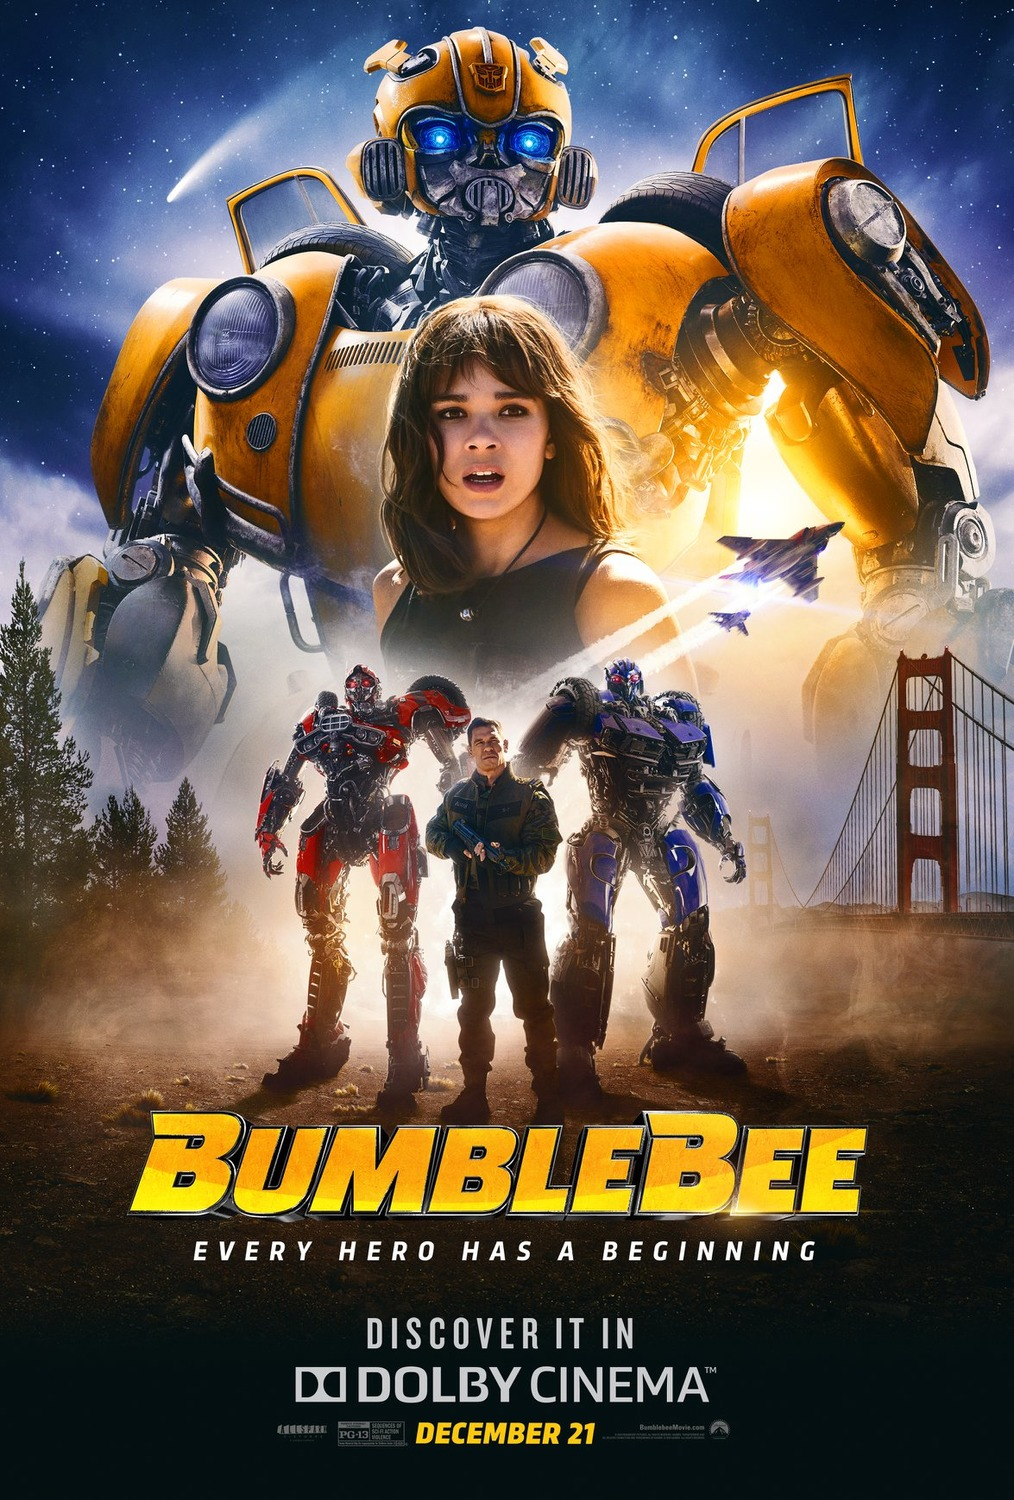 Transformers spinoff Bumblebee gets a Chinese release date